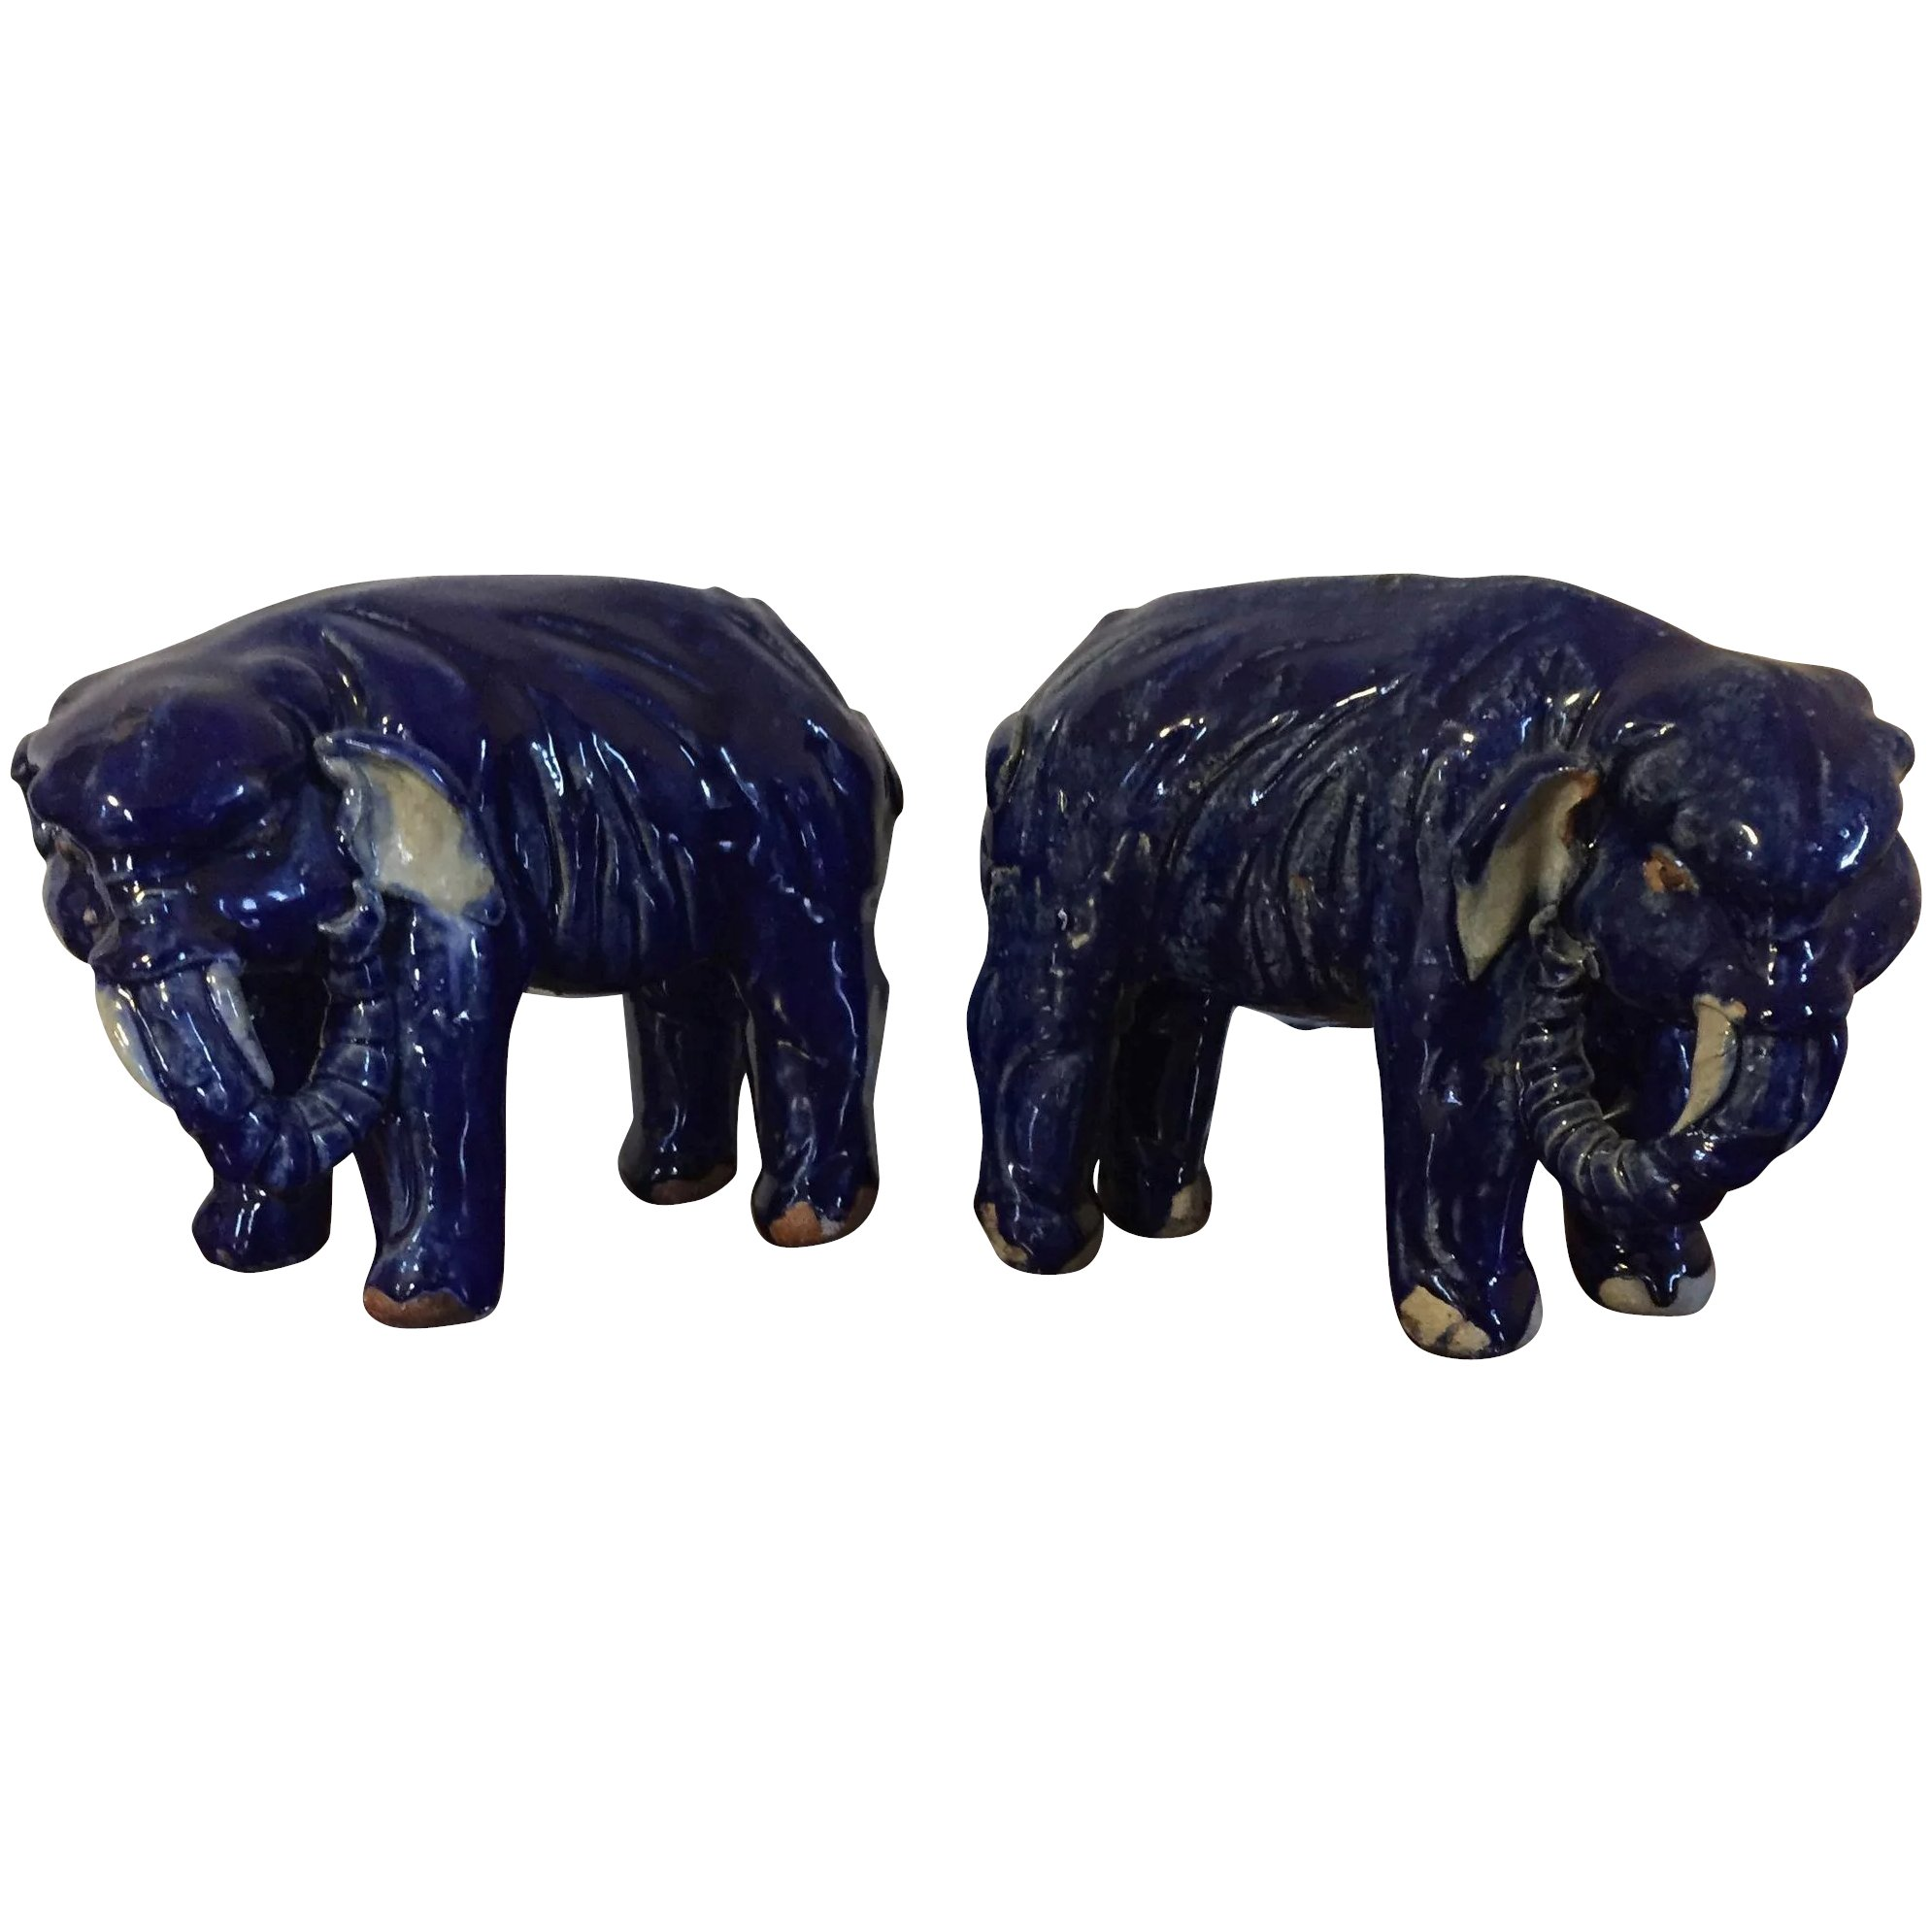 Pair Antique Chinese Porcelain Elephant Figures in Cobalt Blue Glaze Early  20th century Qing